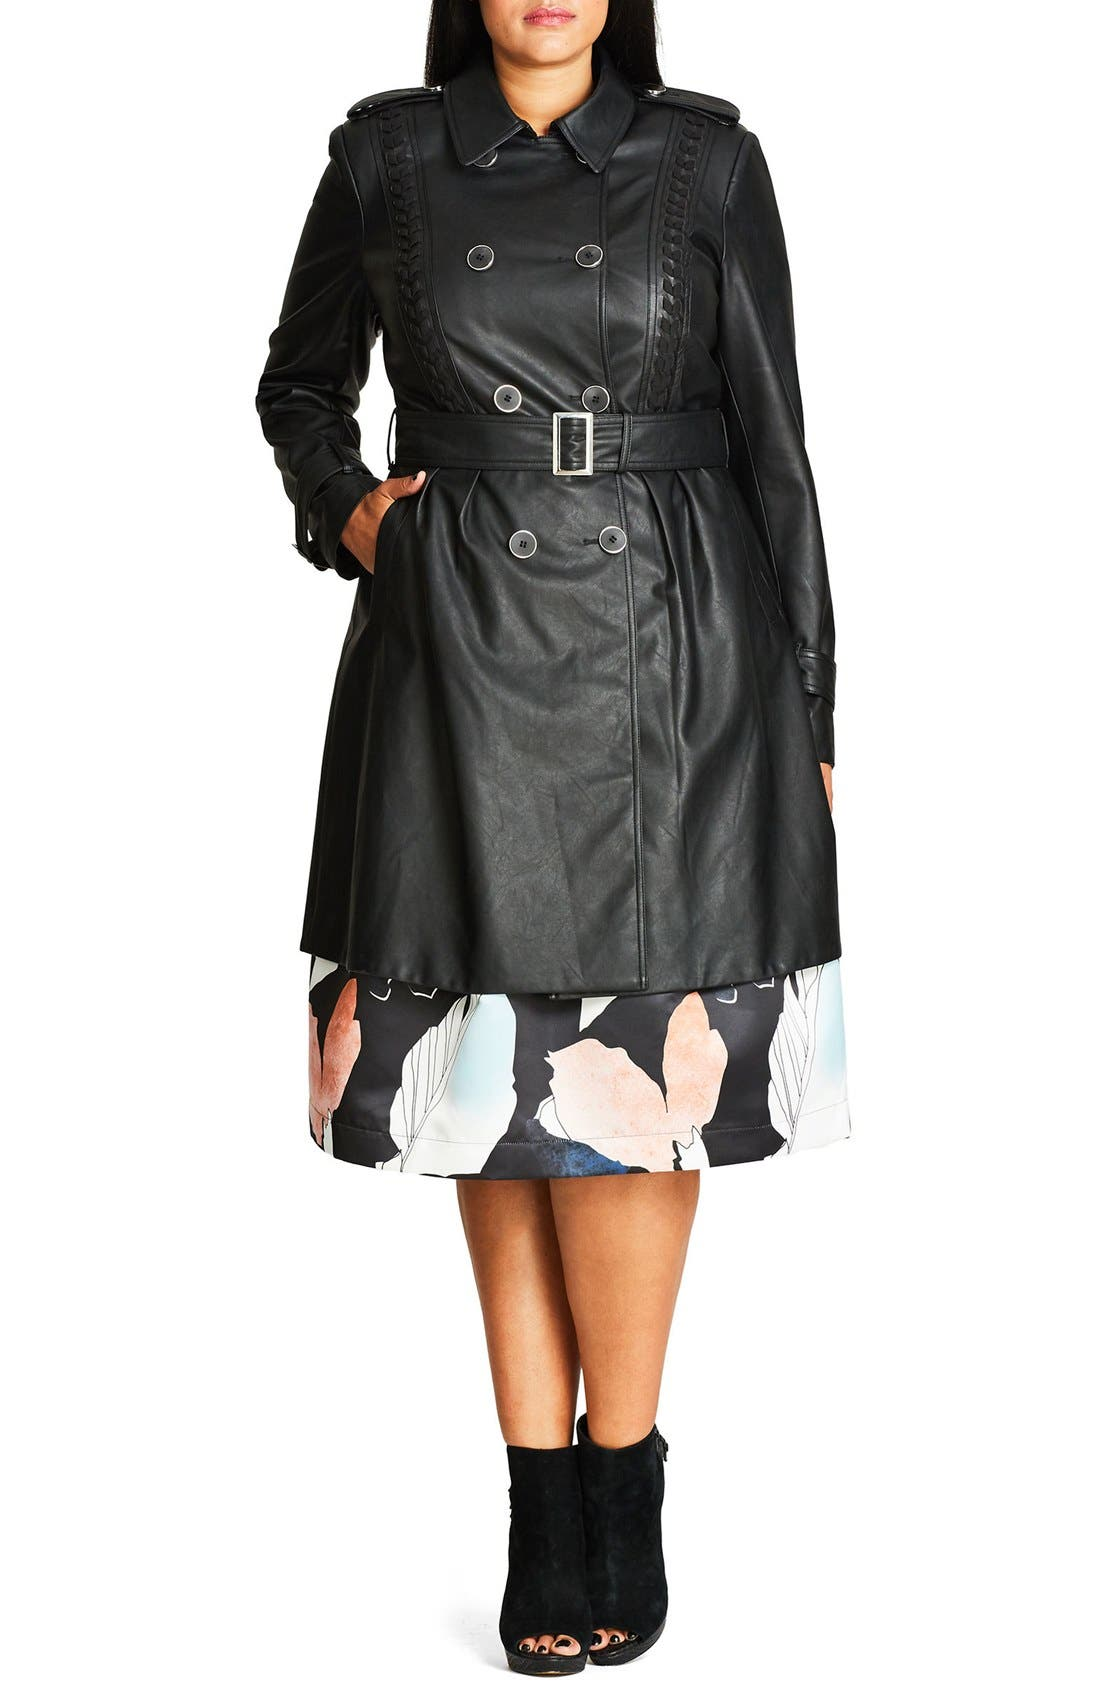 Alternate Image 1 Selected - City Chic 'Vinyl Weave' Braid Detail Faux Leather Trench Coat (Plus Size)